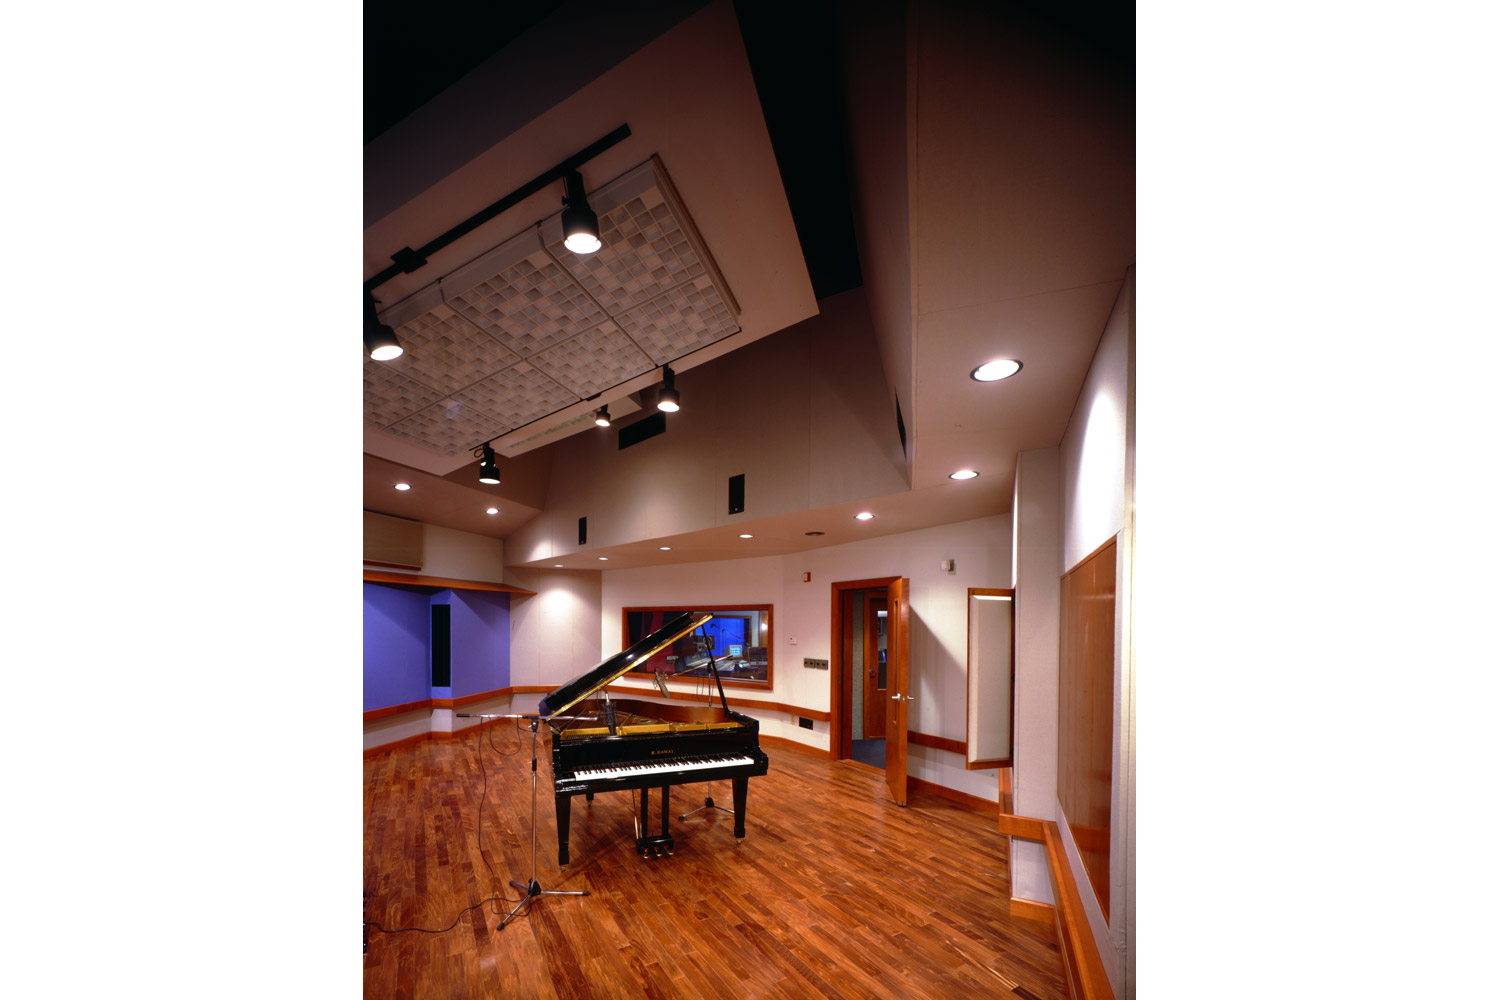 Former Cotton Hill Studios, now Magic Wig Productions. Designed by WSDG (Walters-Storyk Design Group). Piano live room.